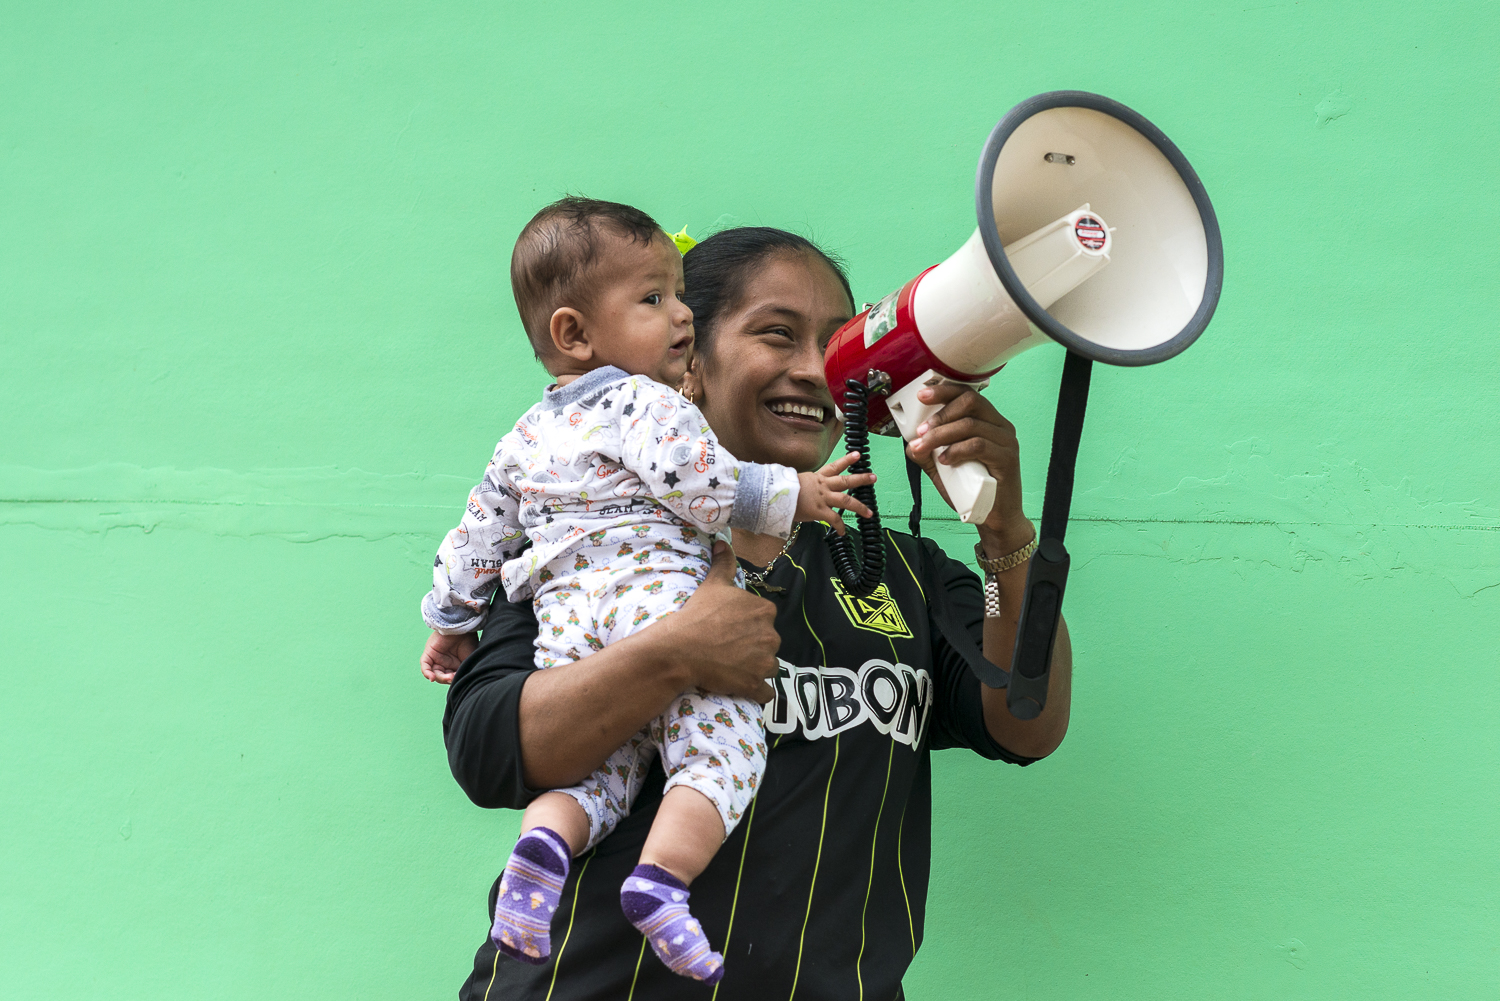 Daisy with her baby Jhorner, is posing with a megaphone. Once all the weapons hand over, the FARC guerrrilleros explains dedicate themself to the political and civil fdemocratic fight.